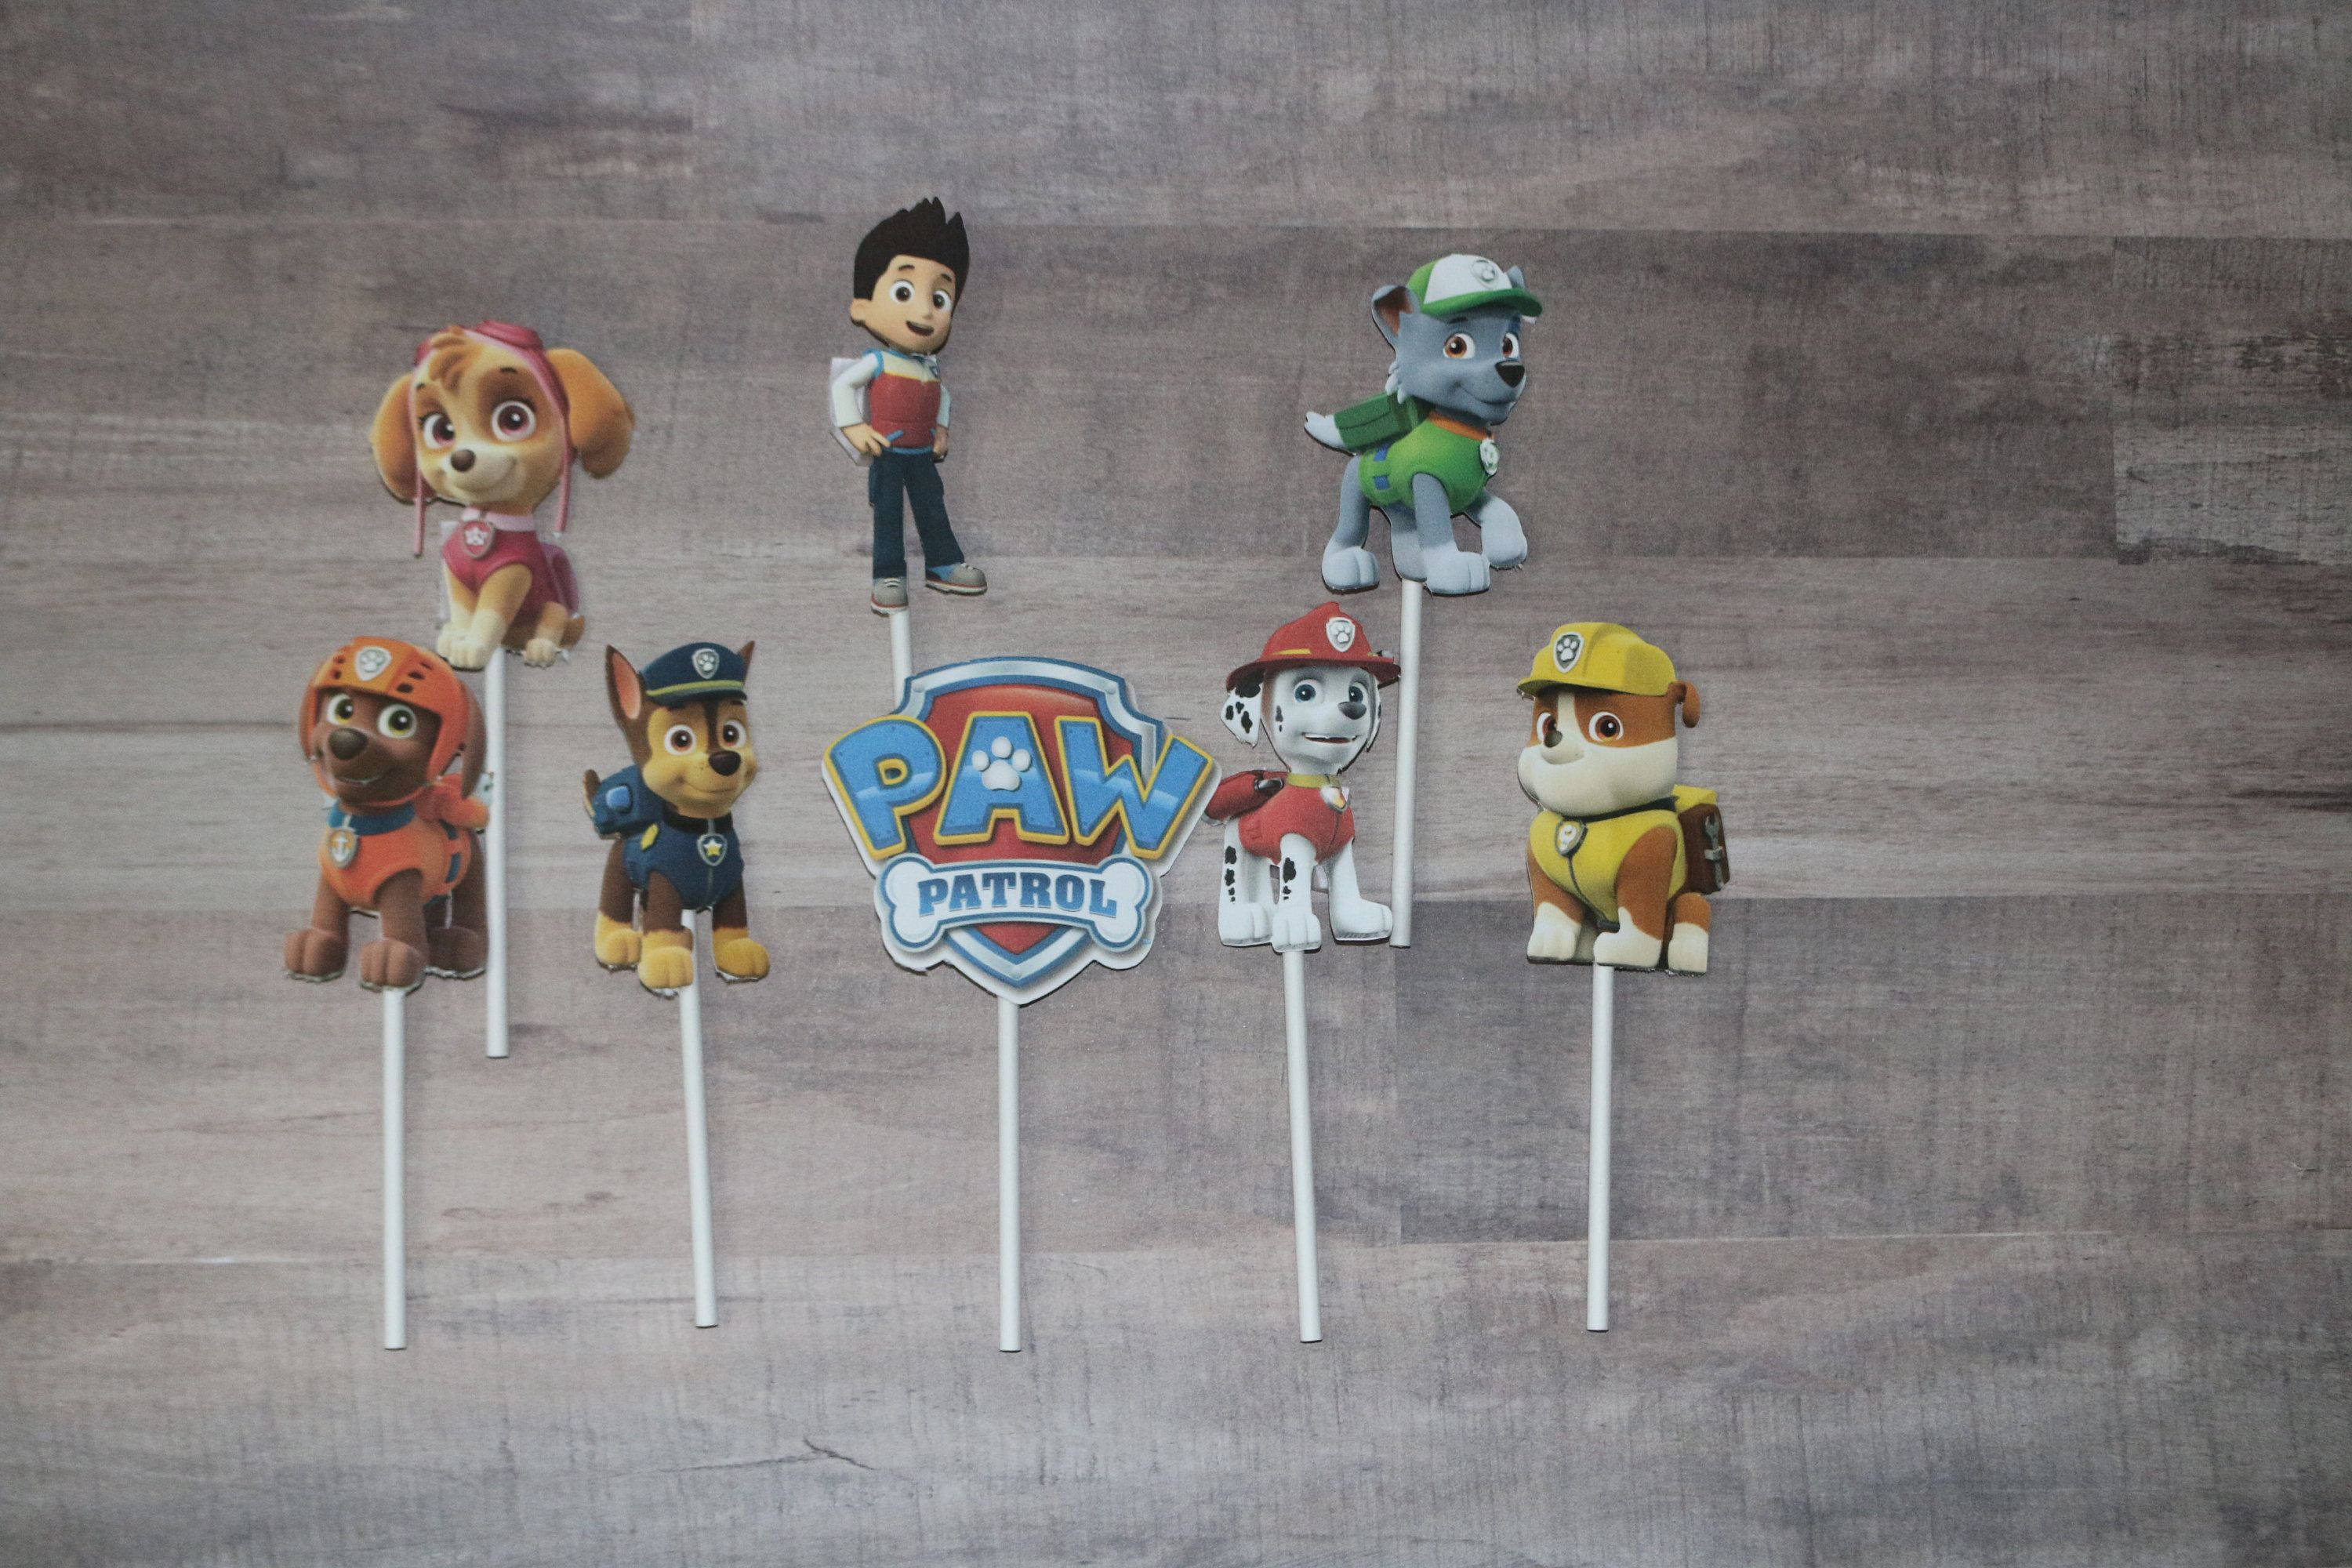 Paw Patrol Cupcake Toppers (24) - Paw patrol cupcake toppers, Paw patrol cupcakes, Paw patrol decorations, Paw patrol, Kids birthday themes, Cupcake toppers - Paw Patrol cupcake toppers  Comes with 24 toppers   Copy Right Disclaimer This item is not a licensed product, all images and characters used in the creation of this item belong to their respective copyright and trademark owners